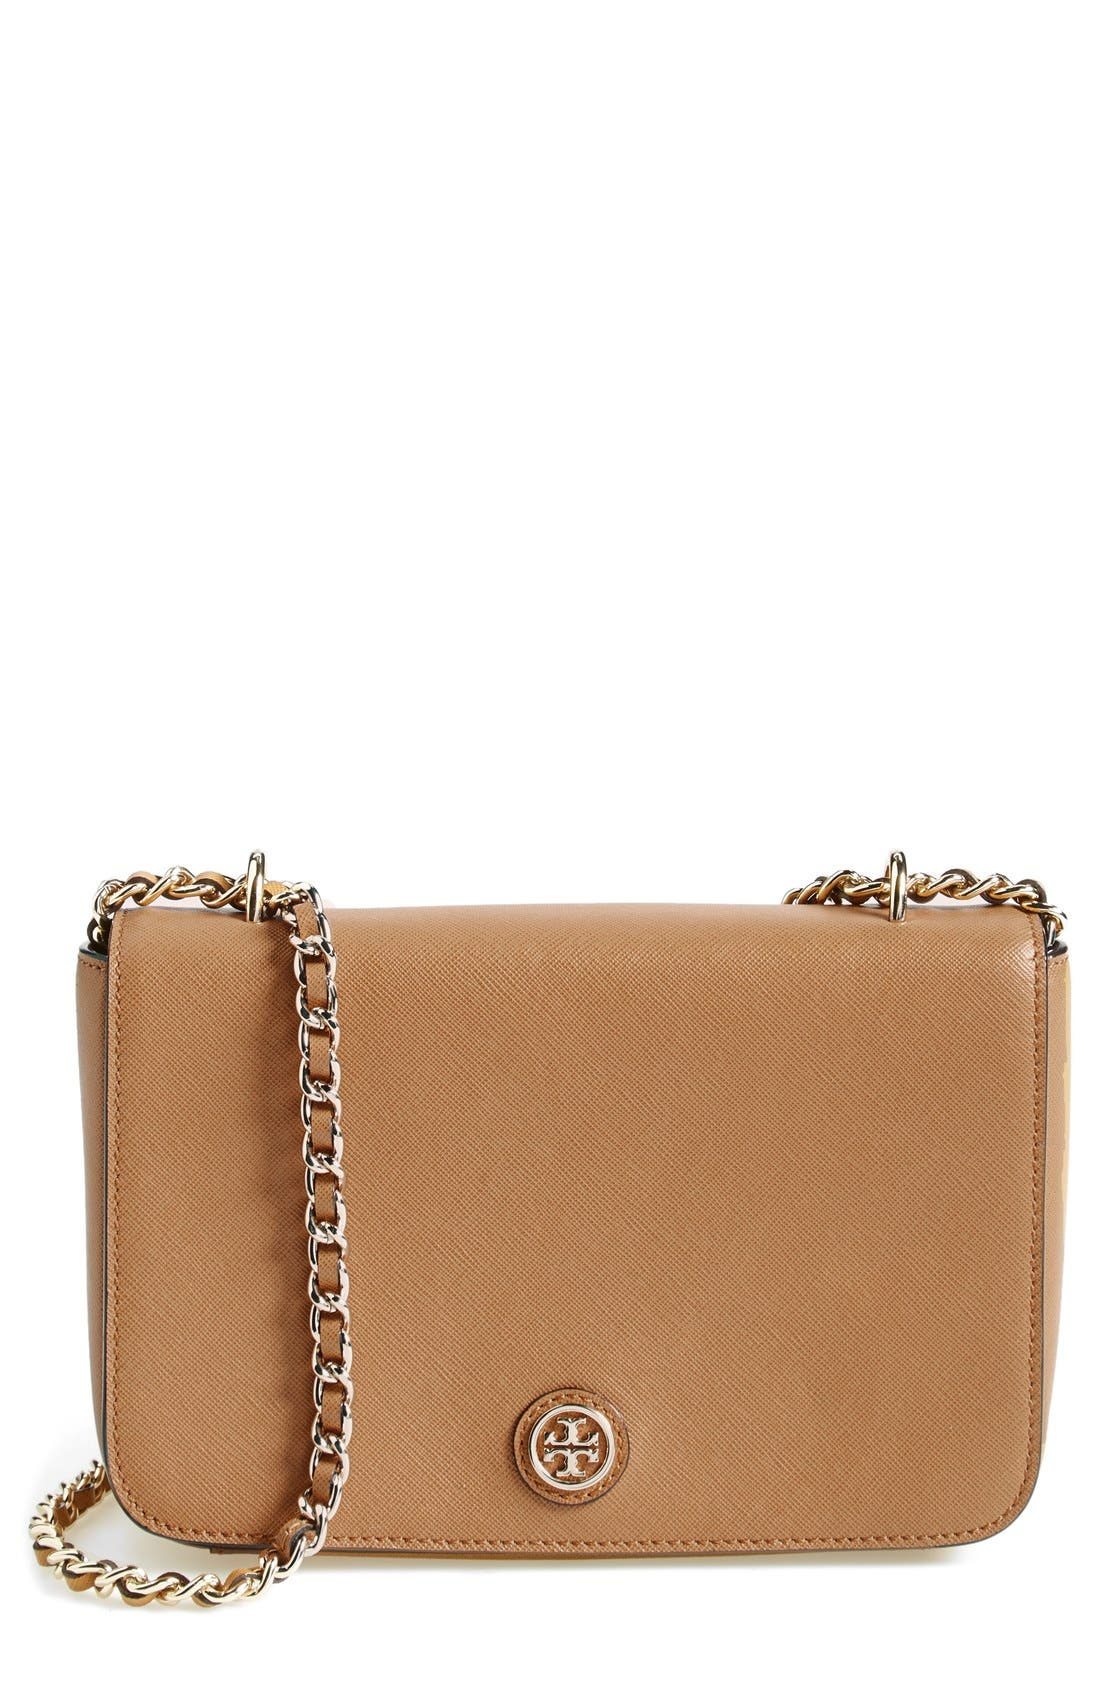 Main Image - Tory Burch 'Robinson' Leather Shoulder Bag